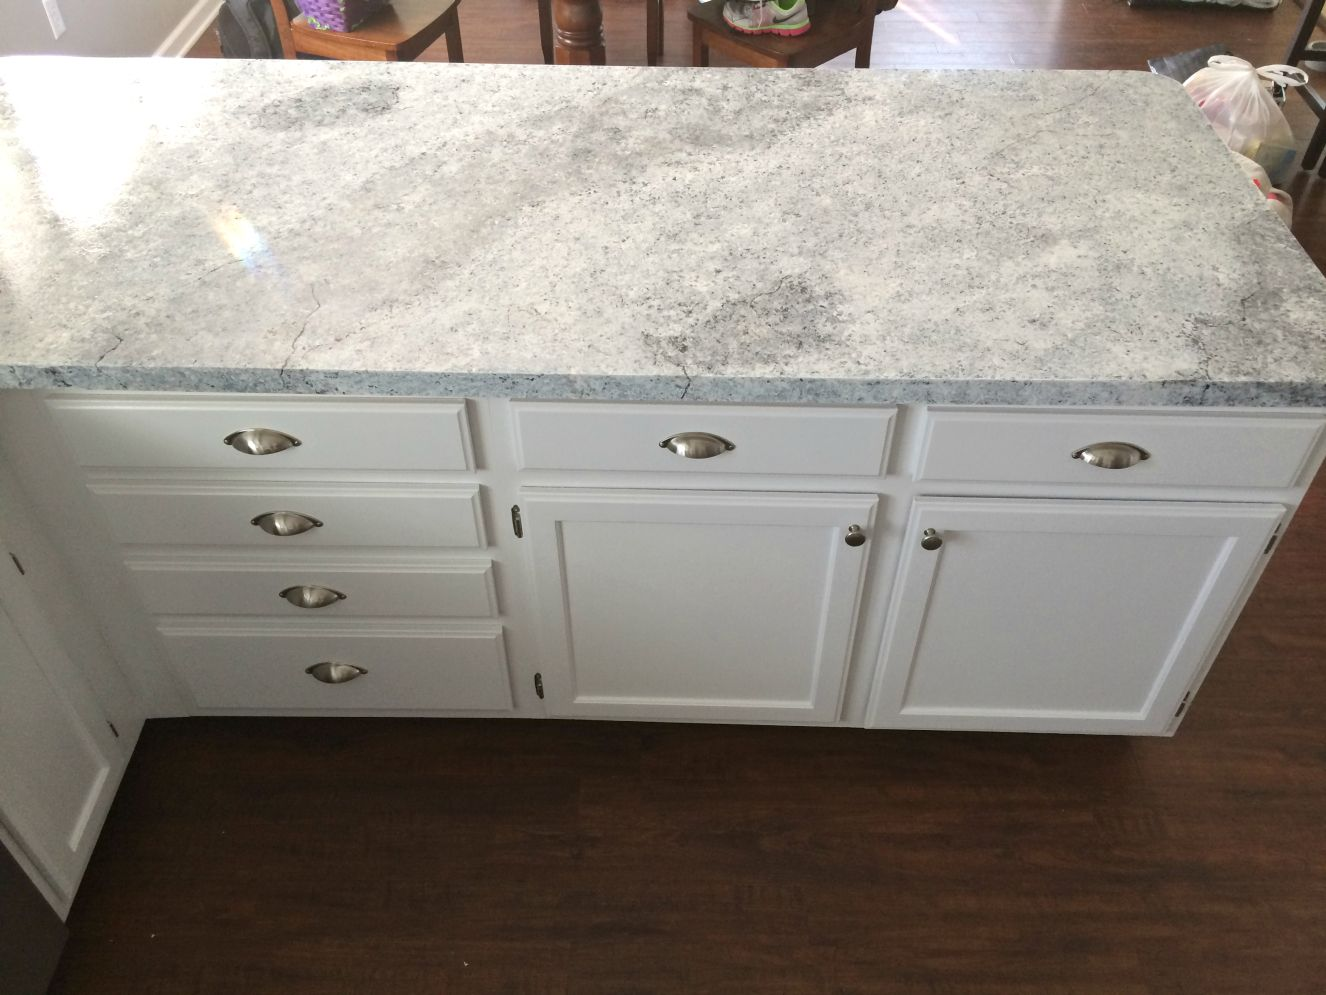 Painted Marble Countertops Countertop Redo With Giani Granite Countertop Paint Home Ideas